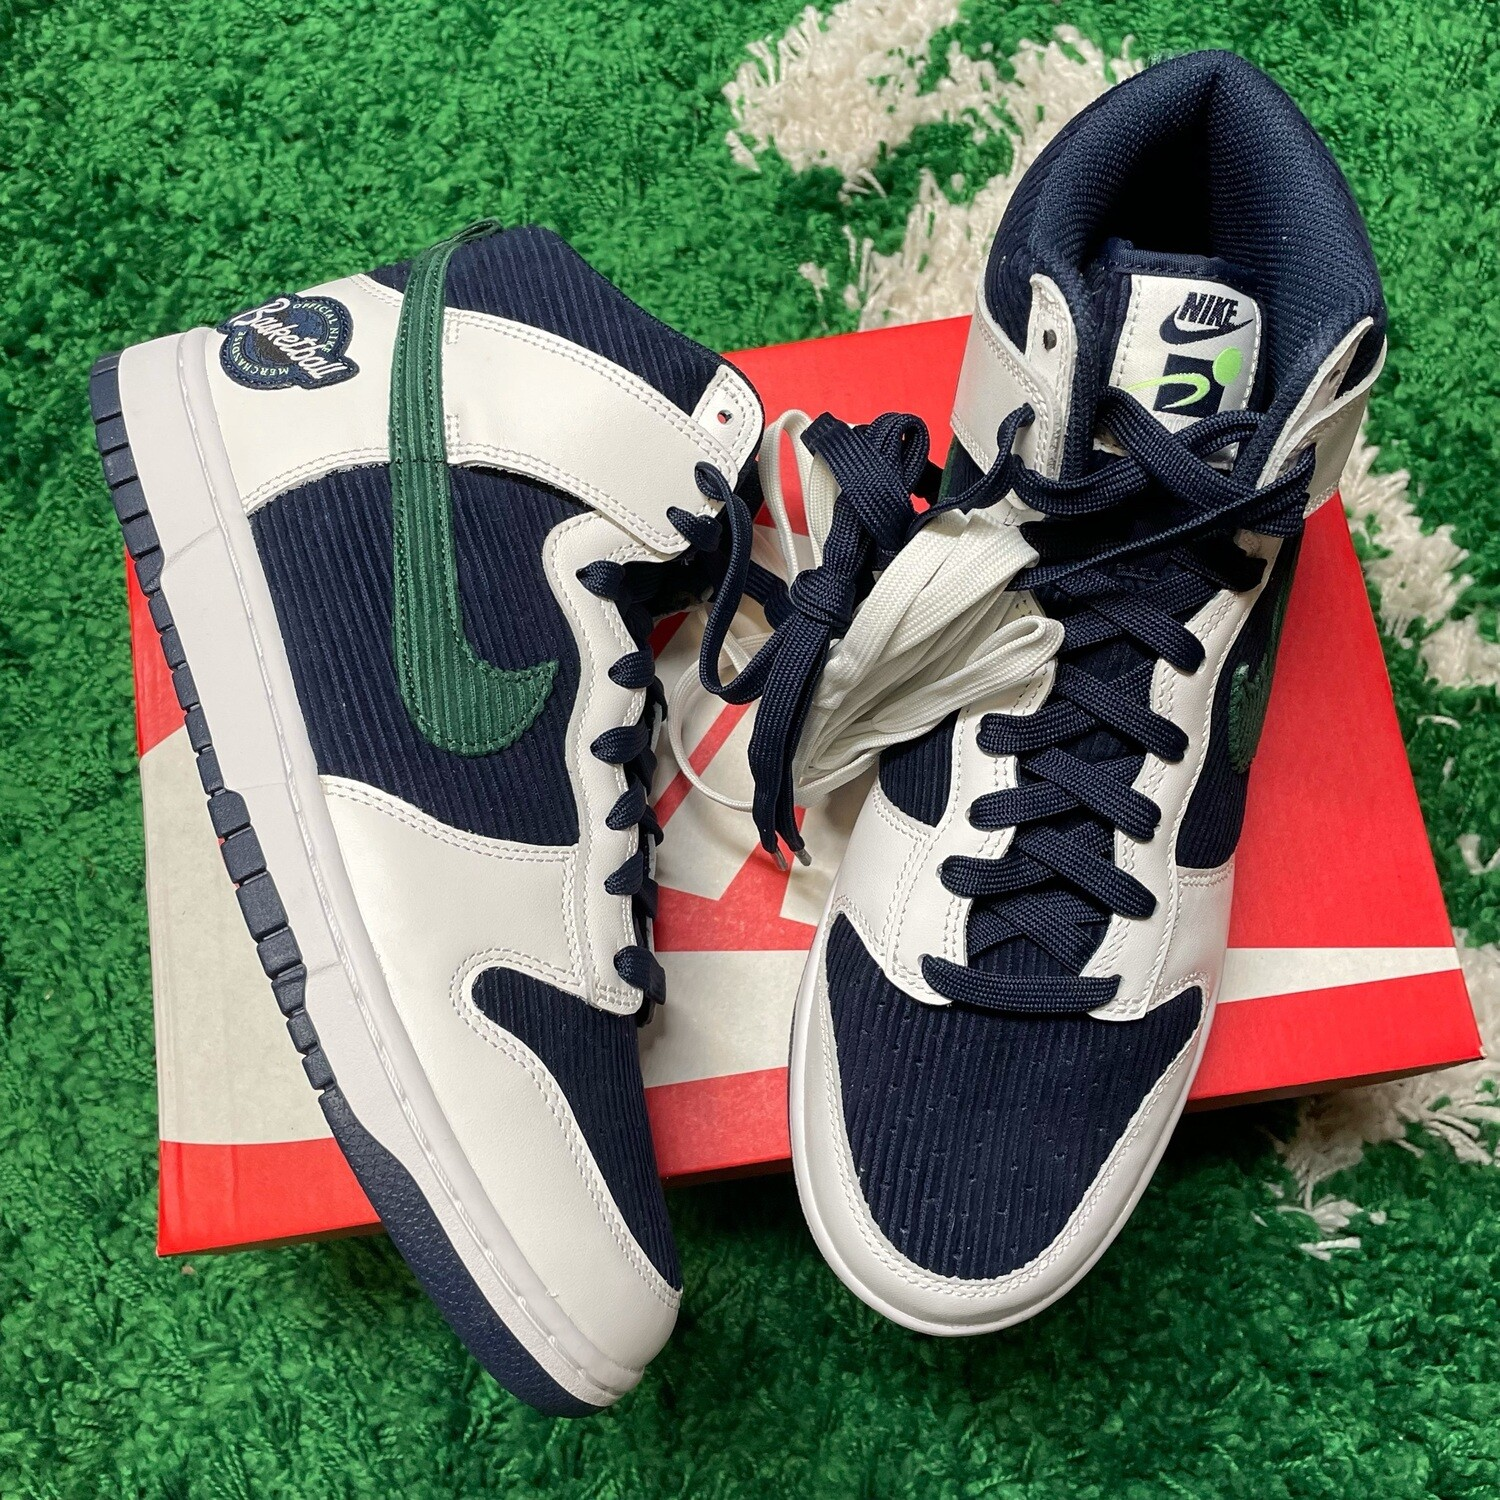 Nike Dunk High Sports Specialties White Navy Size 10